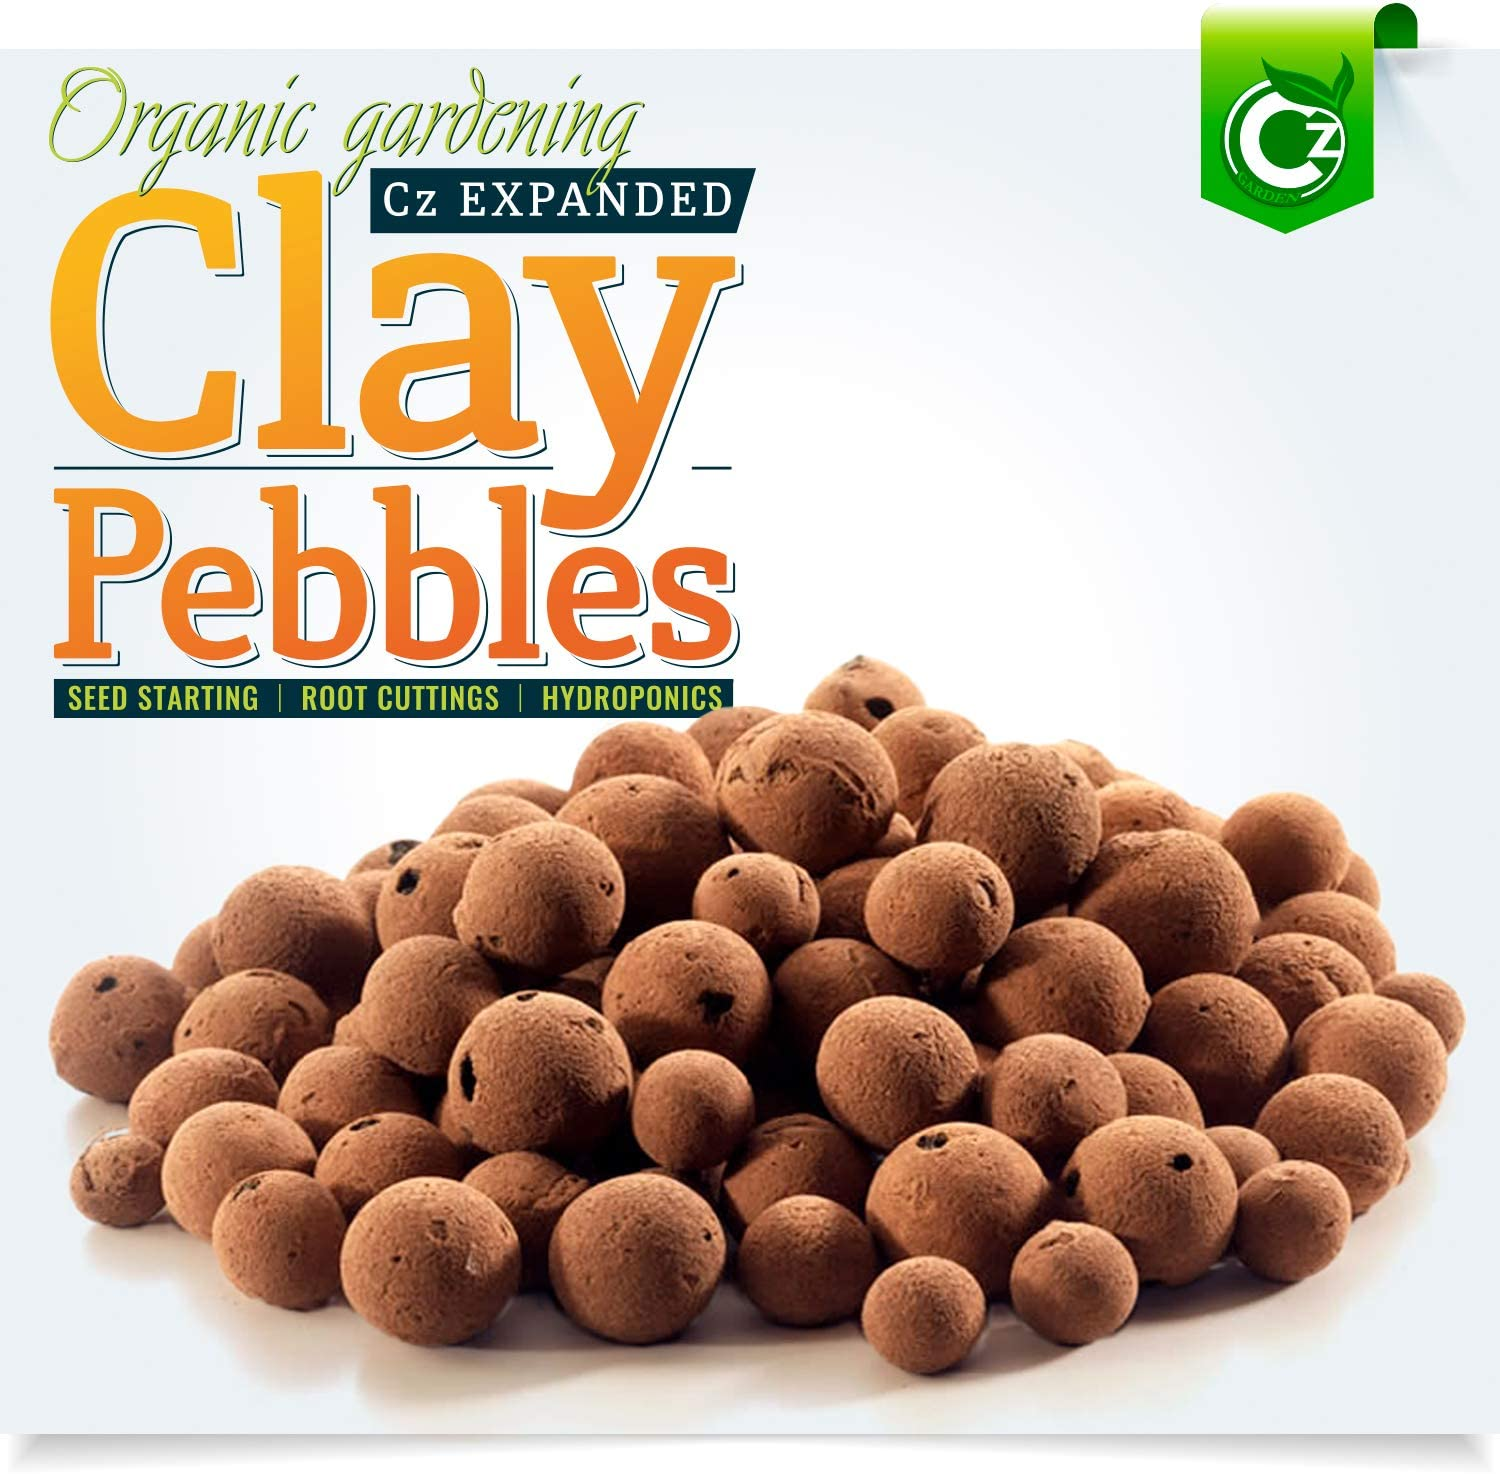 Cz Garden Supply Organic Expanded Clay Pebbles Grow Media For Orchids Hydroponics Aquaponics Amazon Ca Patio Lawn Garden